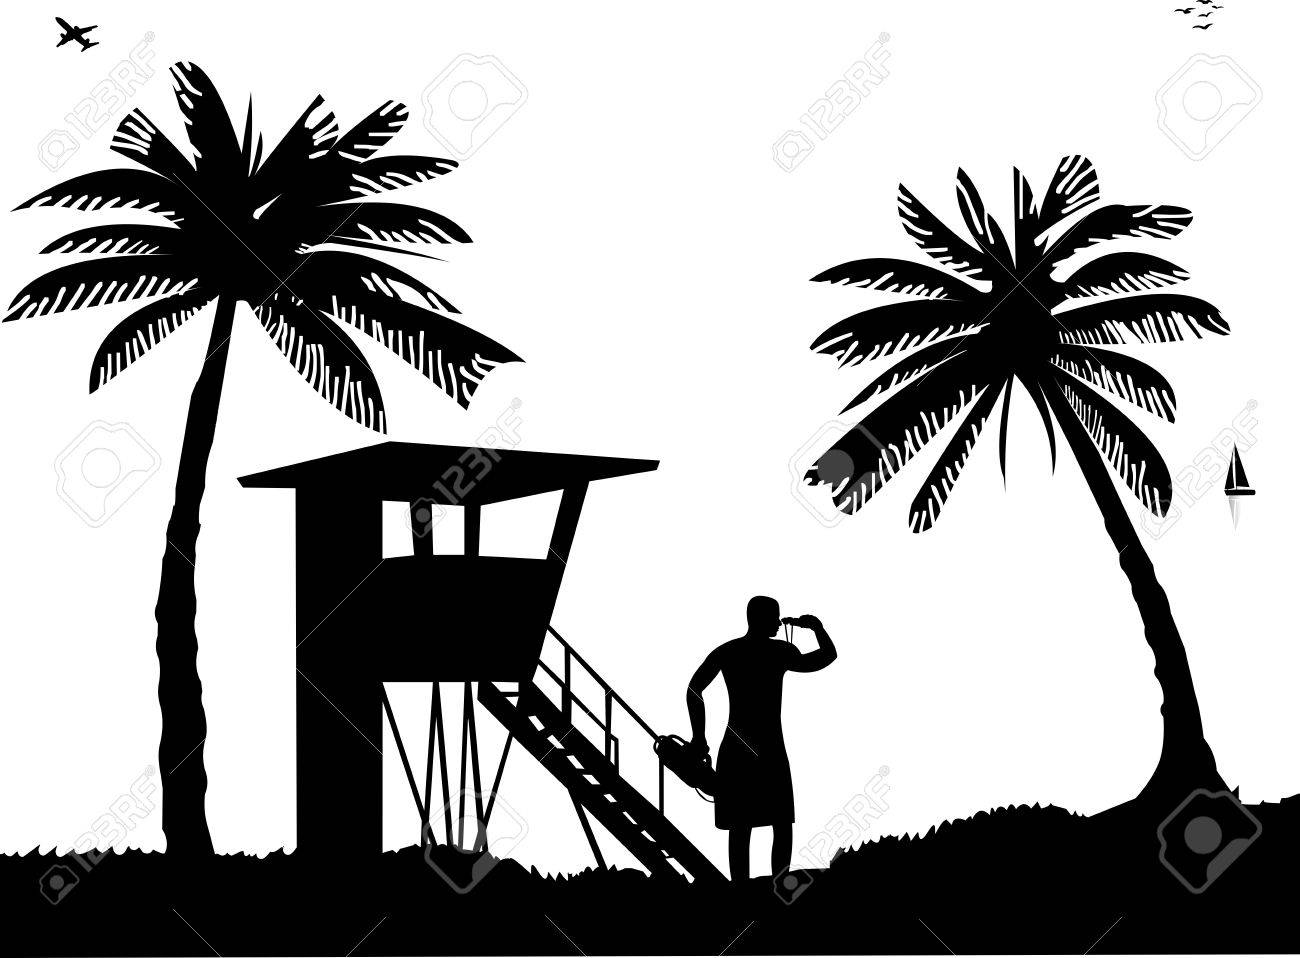 Lifeguard chair cartoon - Lifeguards On The Beach And Beach Watch Tower On Seashore Silhouette Stock Vector 14500956